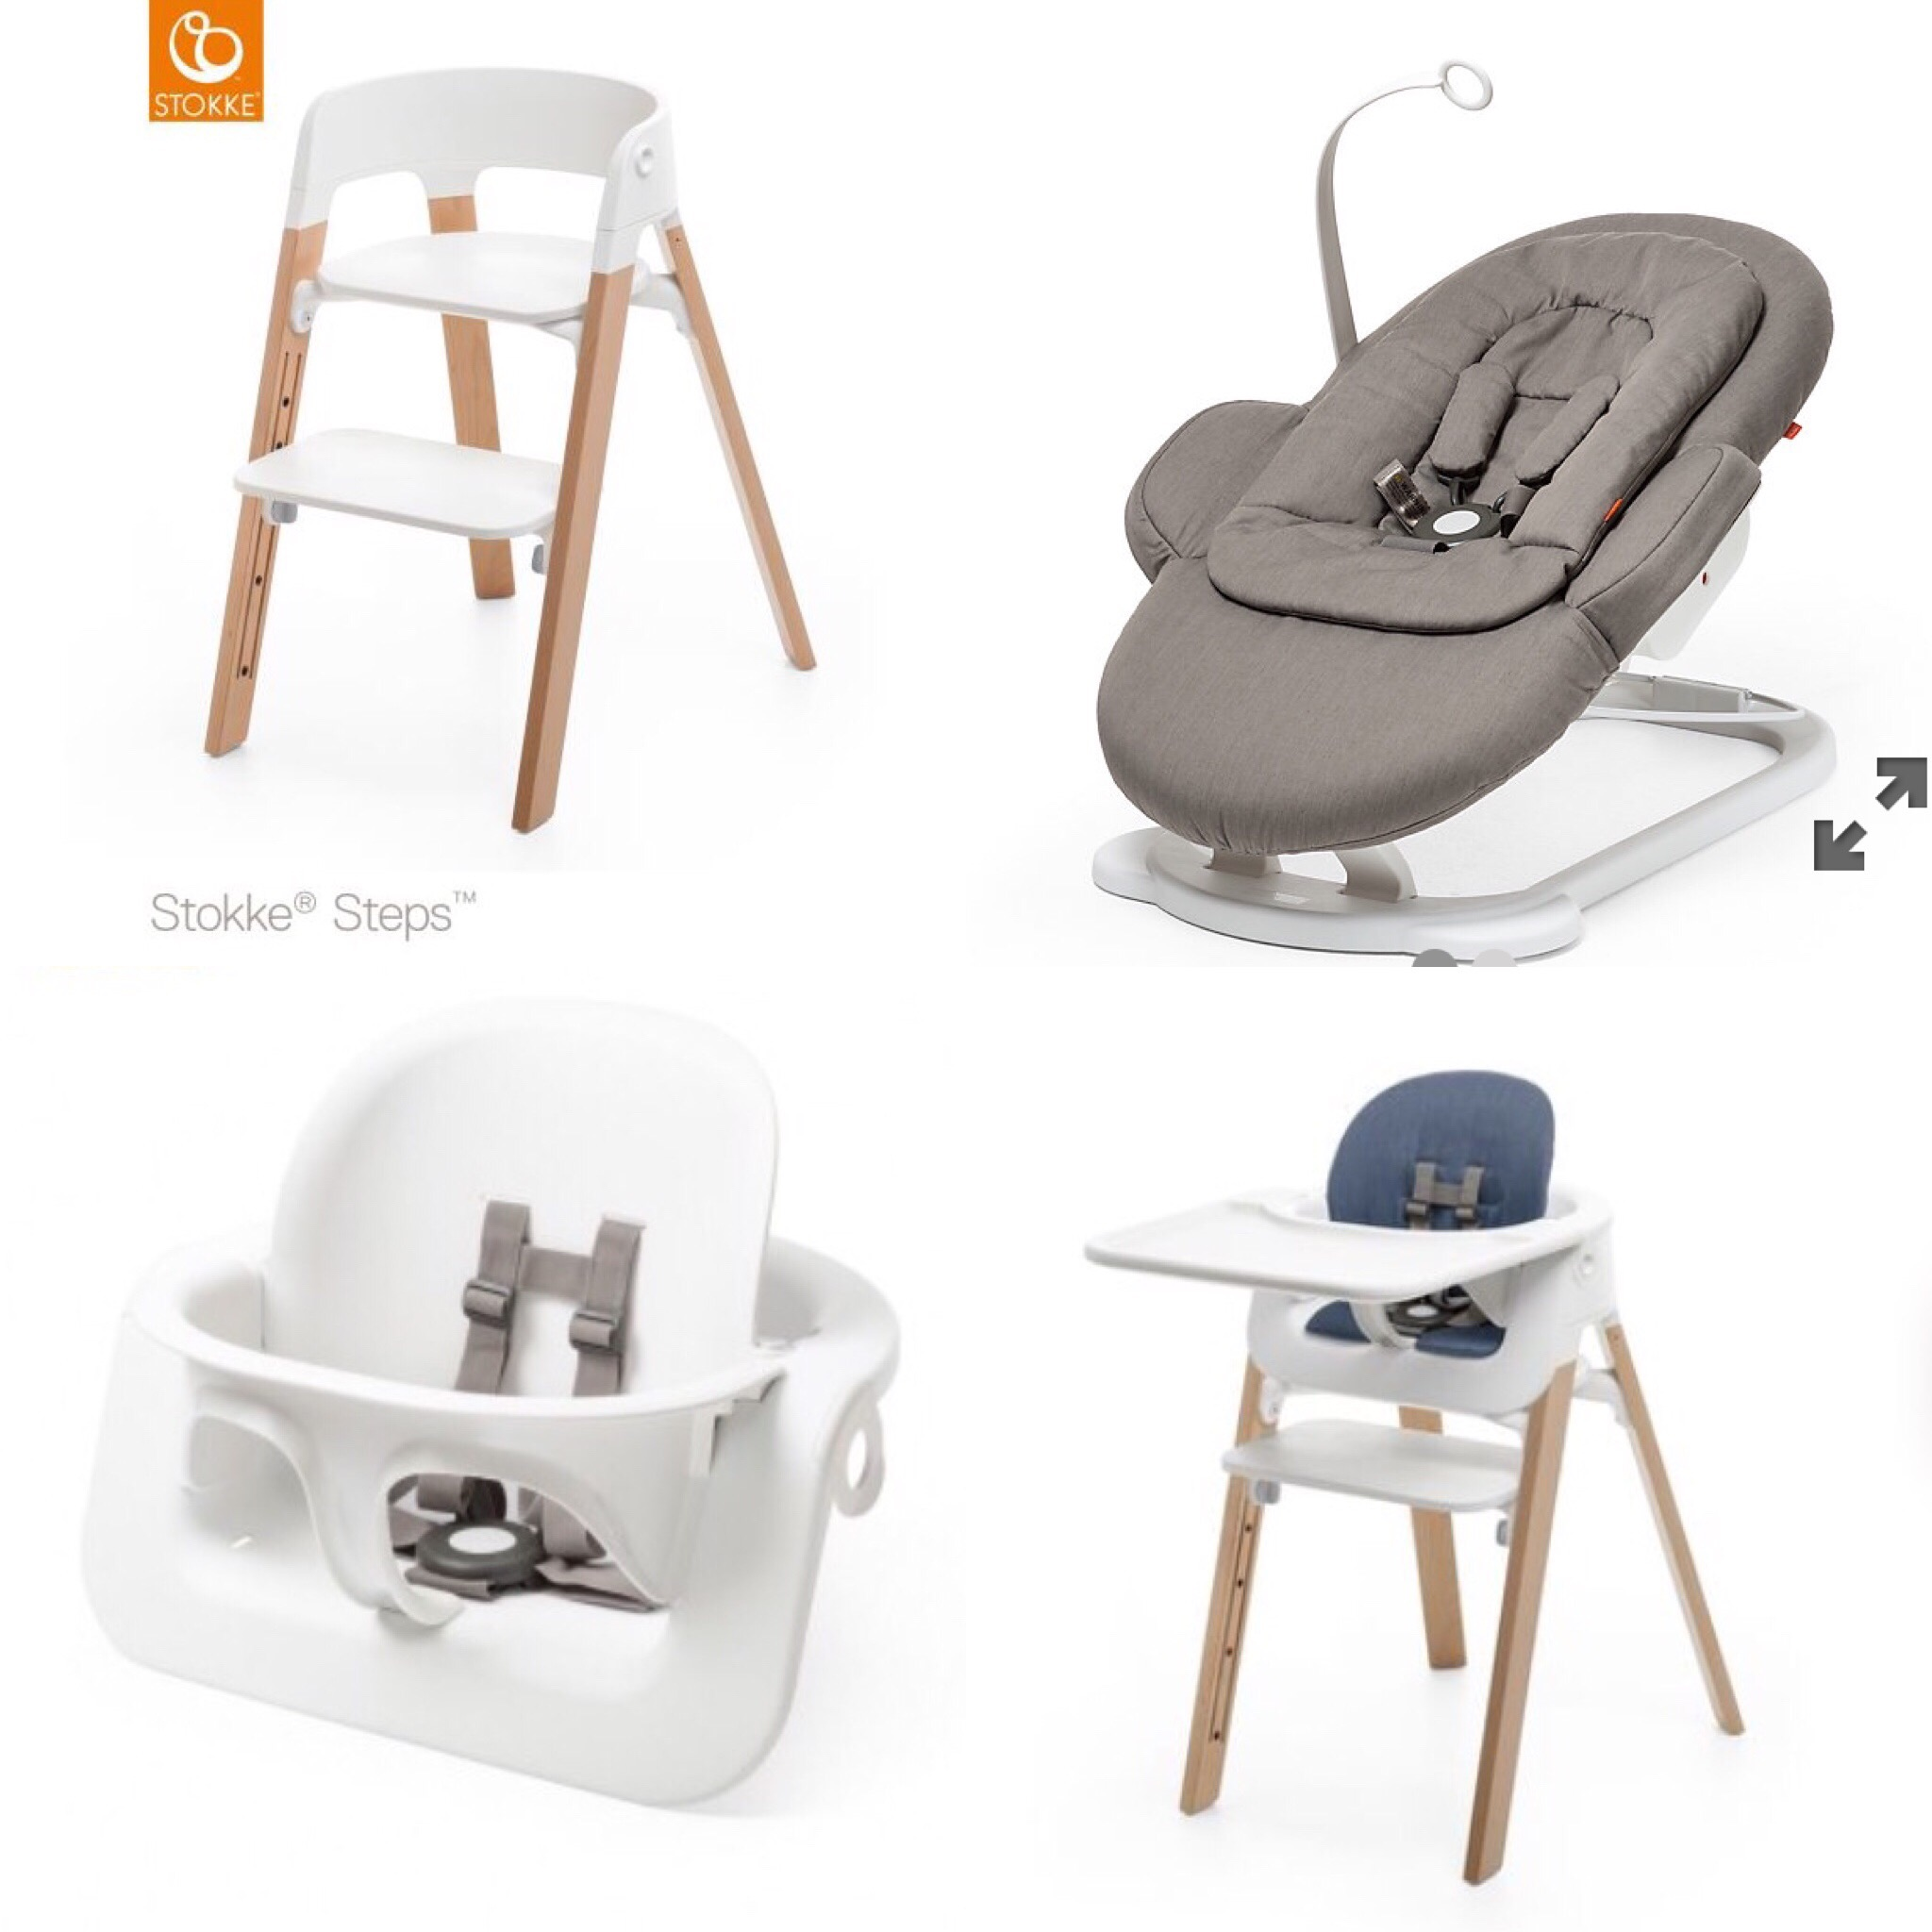 Stokke Steps High Chair Luxury Stokke High Chair Rtty1 Rtty1